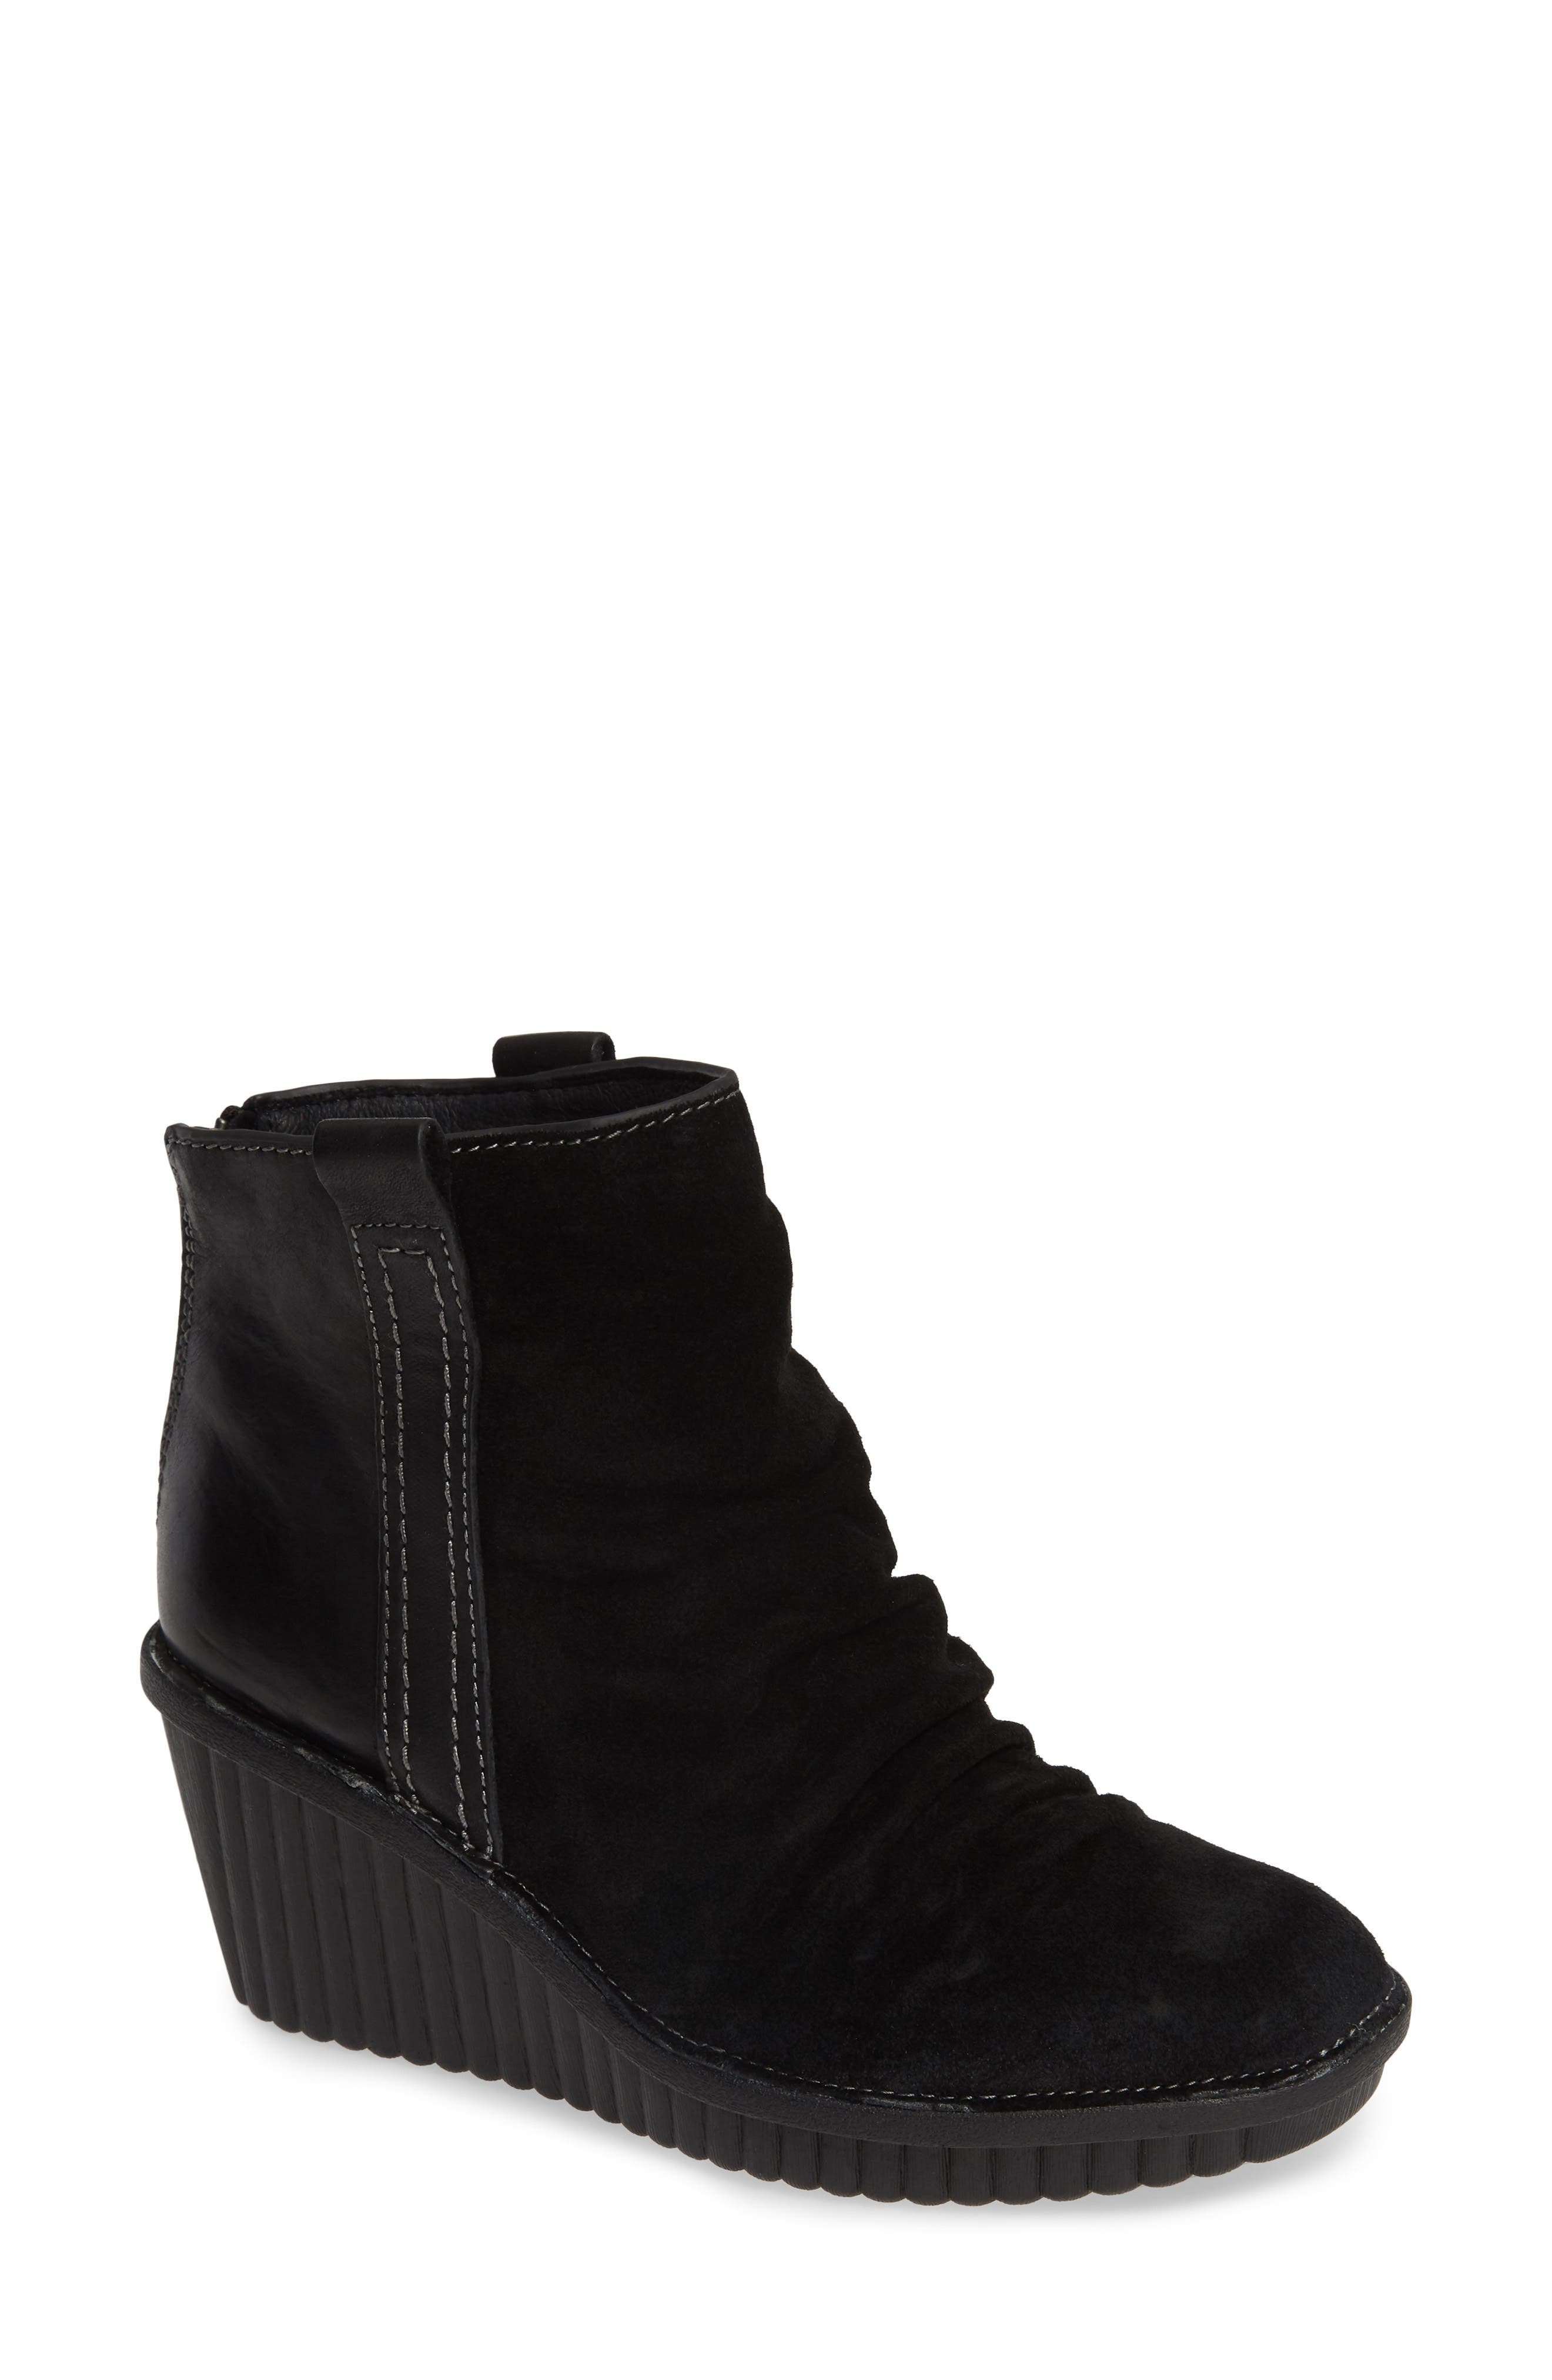 Destiny Wedge Bootie, Main, color, BLACK LEATHER/ SUEDE